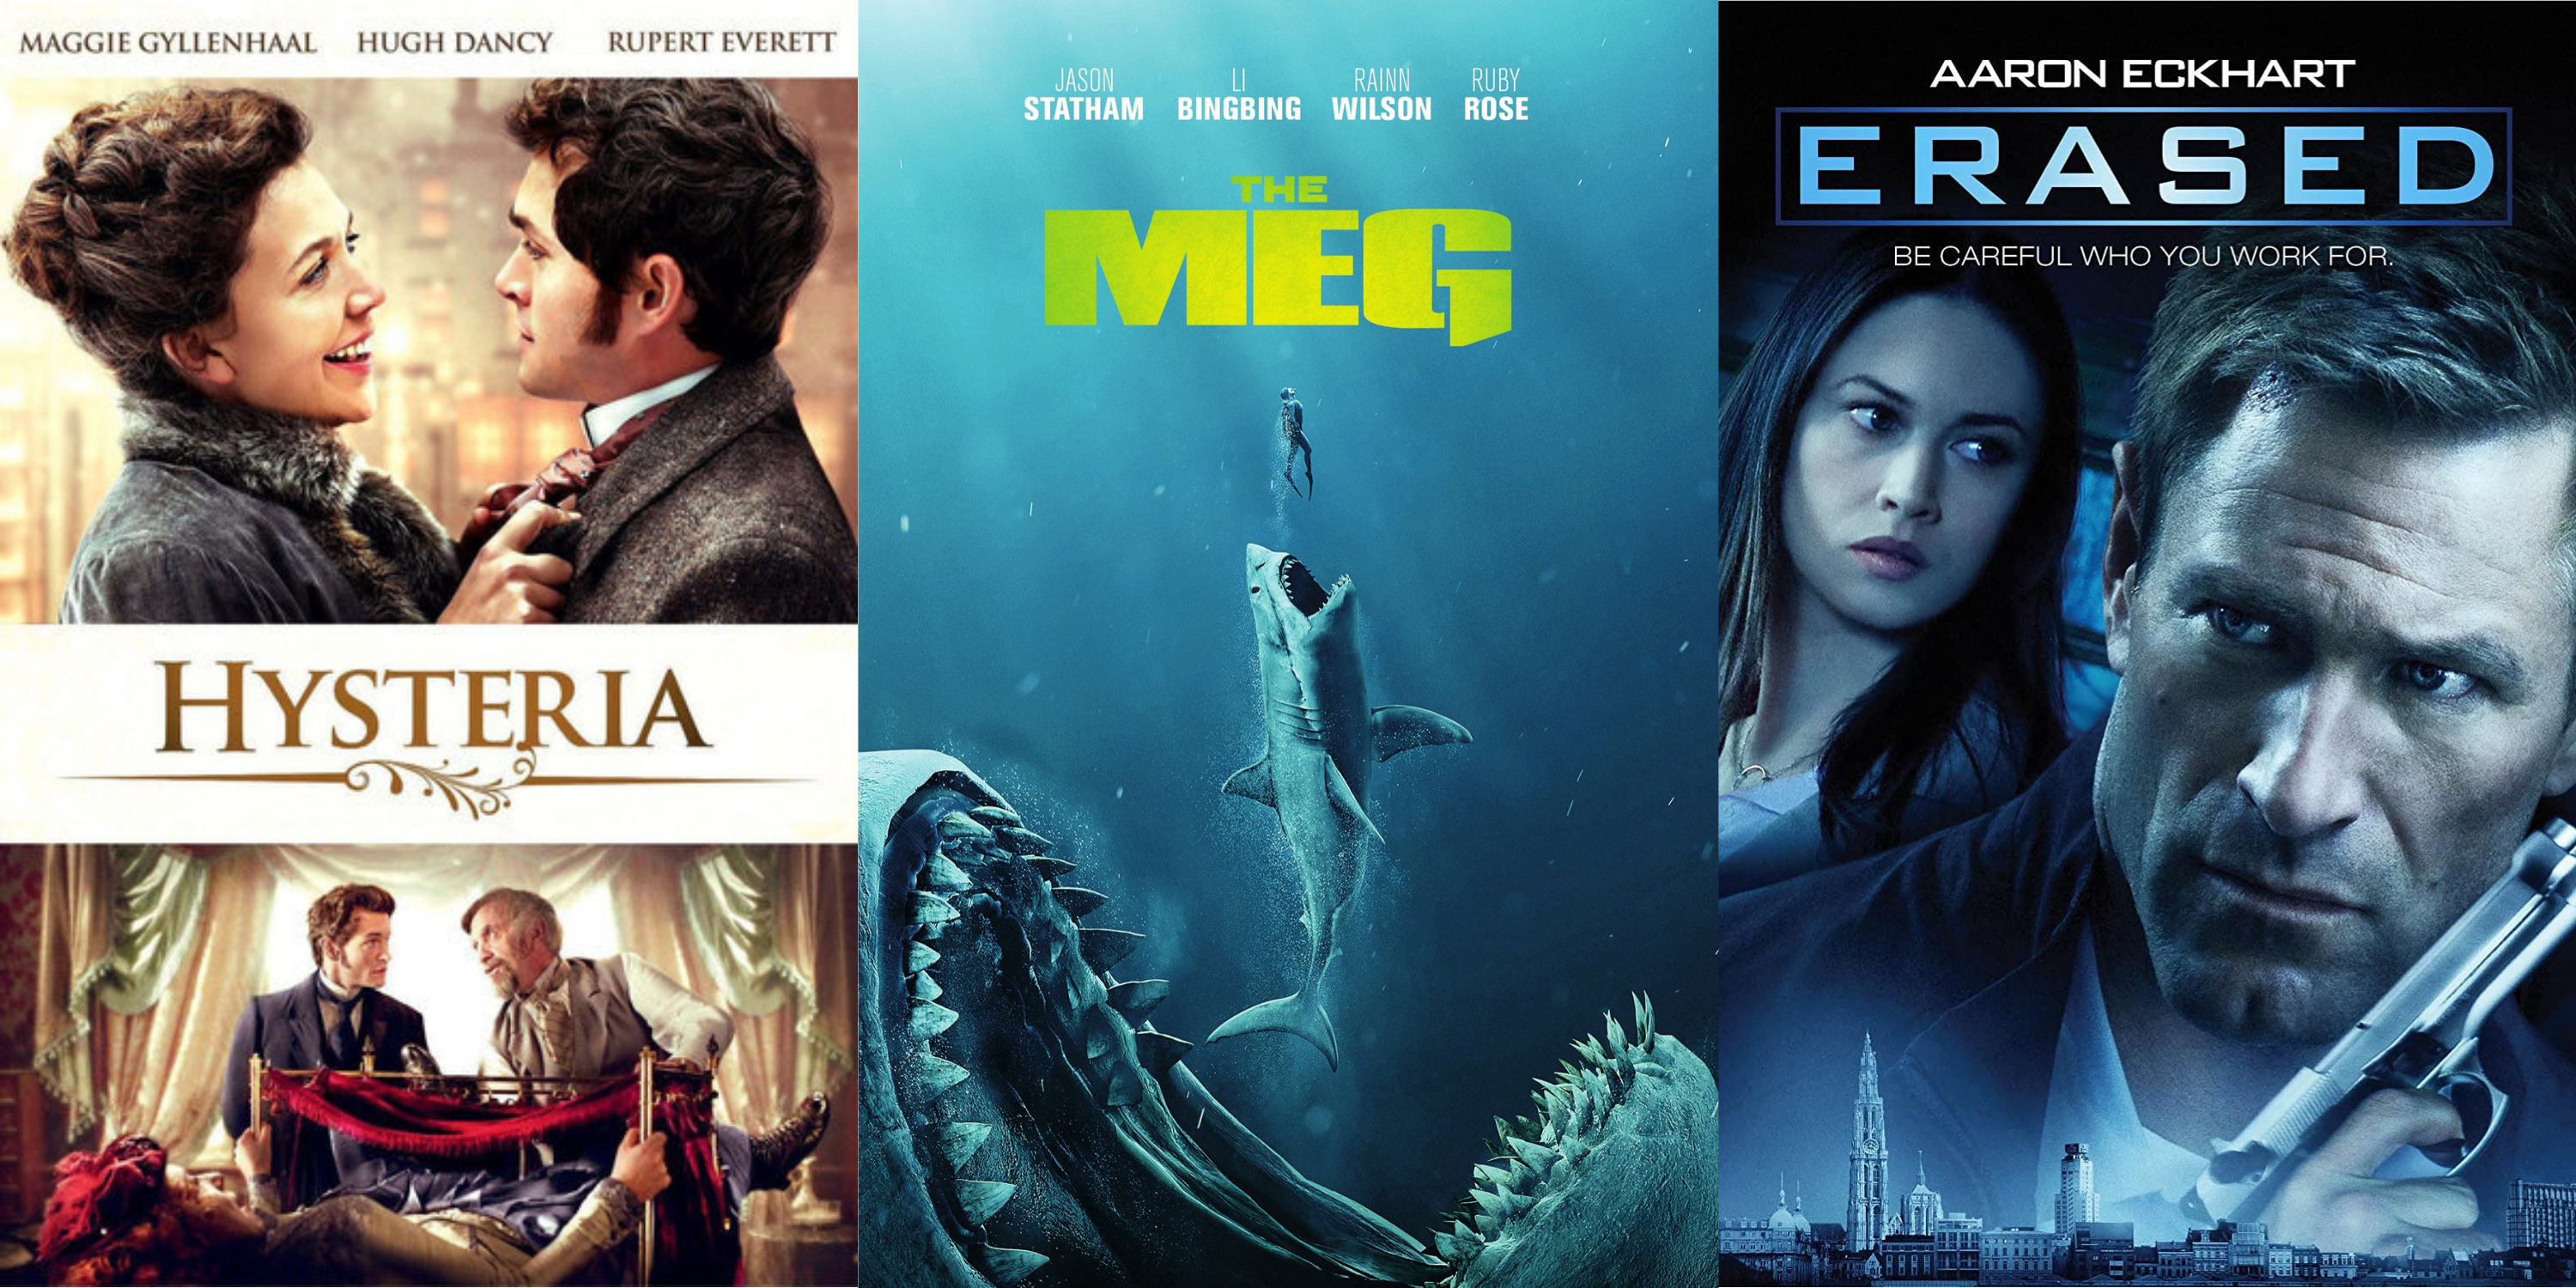 Films Ken Atchity has produced — Hysteria (Maggie Gyllenhaal), The MEG (Jason Statham), Erased (Aaron Eckhart)